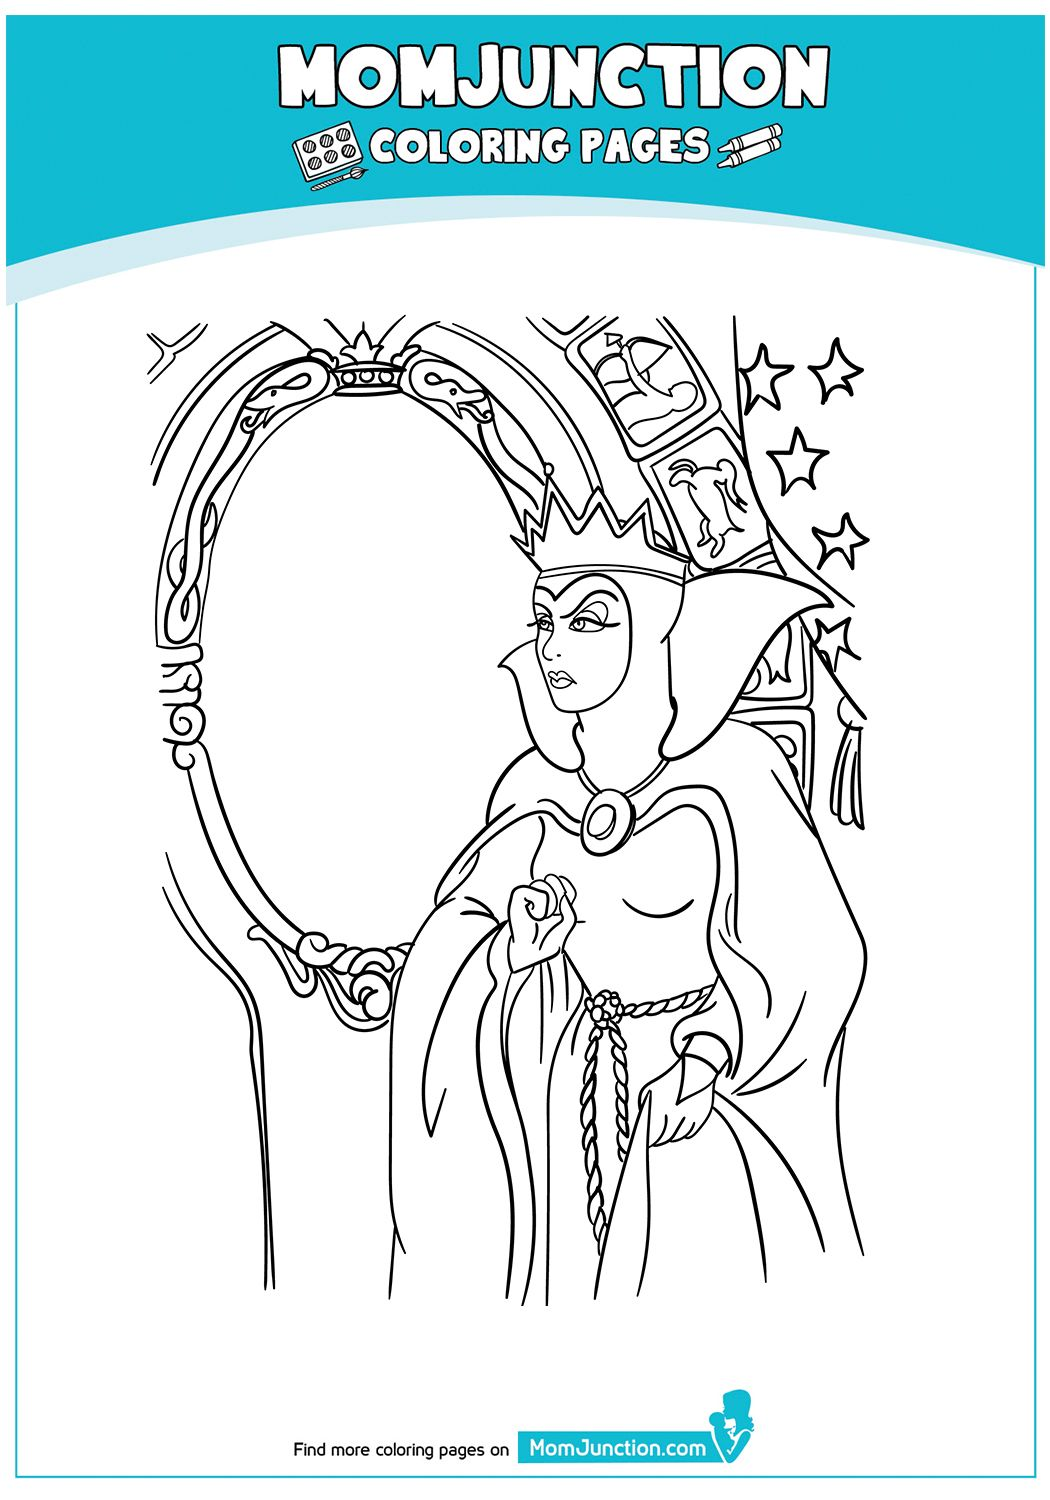 The Magic Mirror 17 Coloring Pages Color Magic Mirror